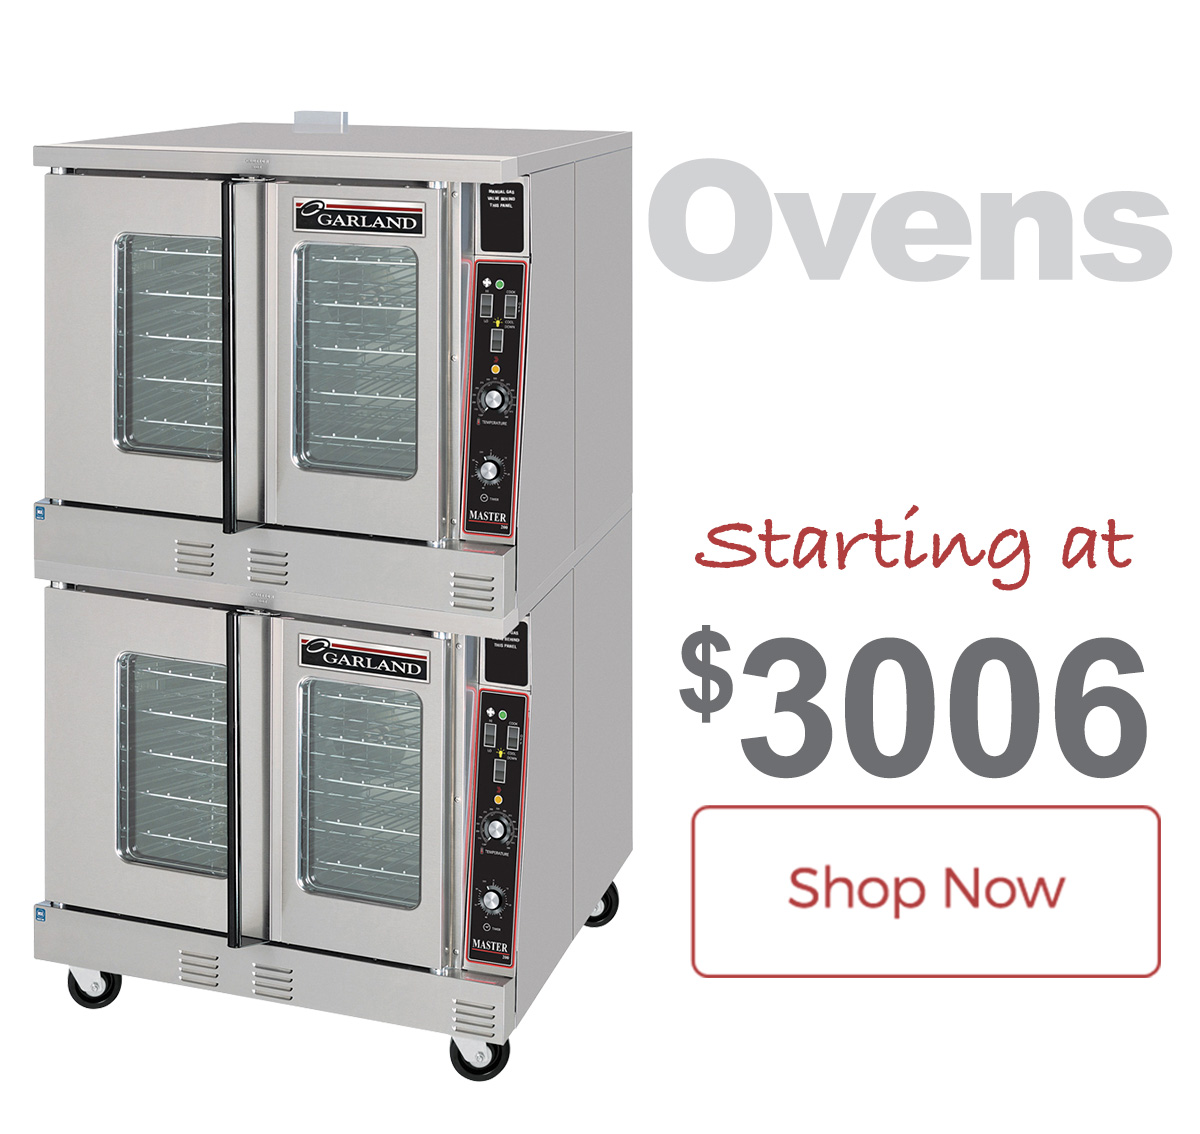 Garland Ovens now with Free Shipping!